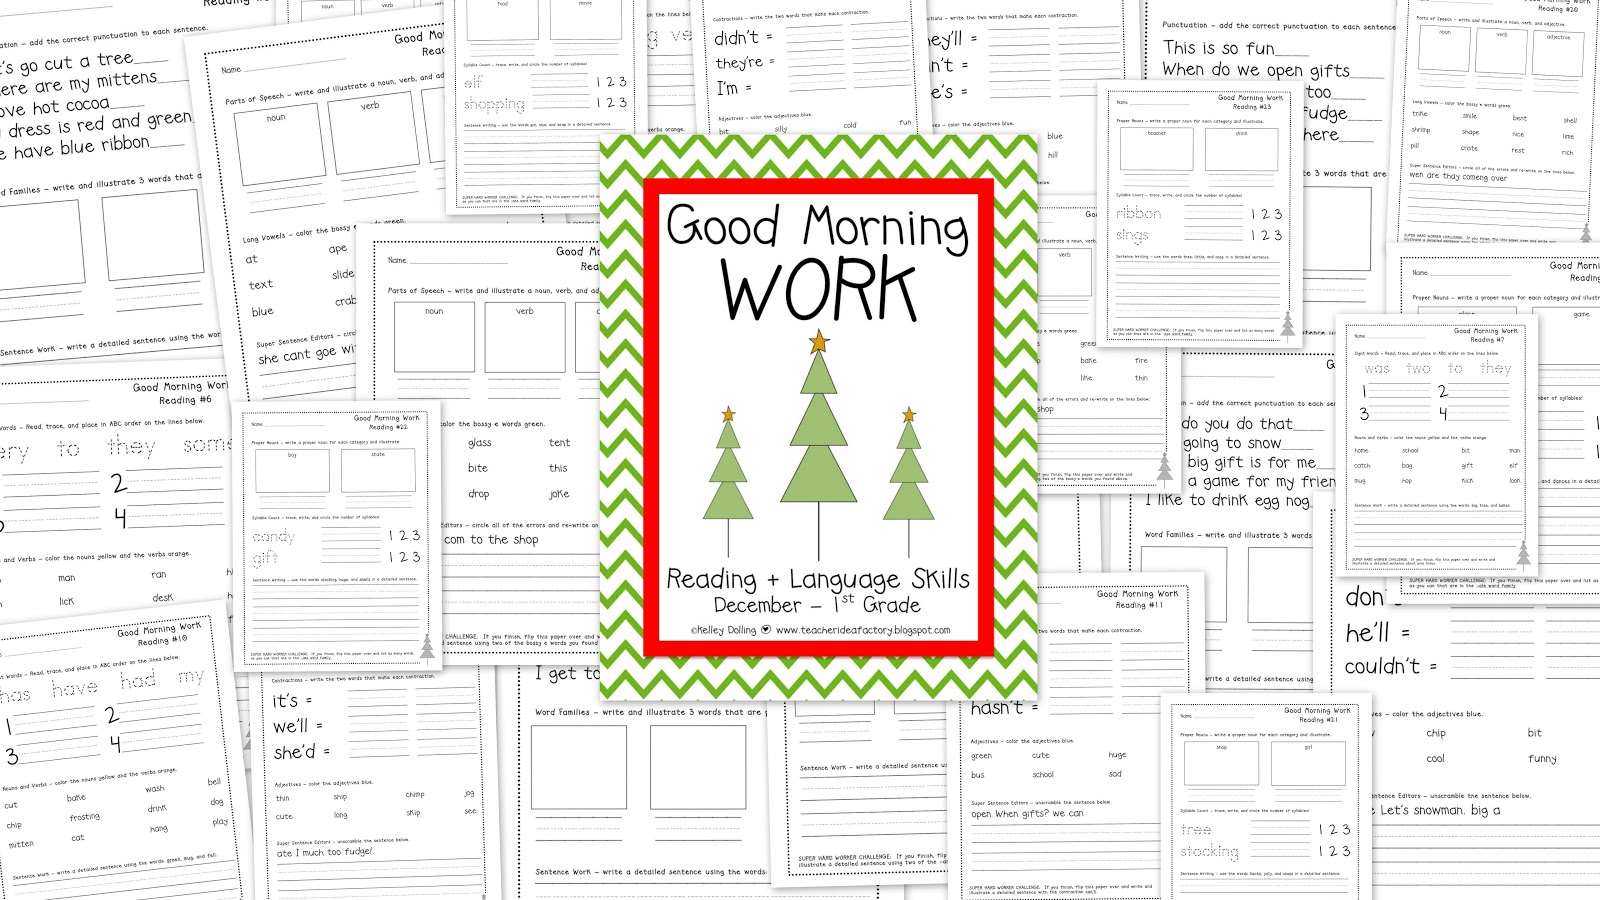 GOOD MORNING WORK - READING + TESTER PAGES - Teacher Idea